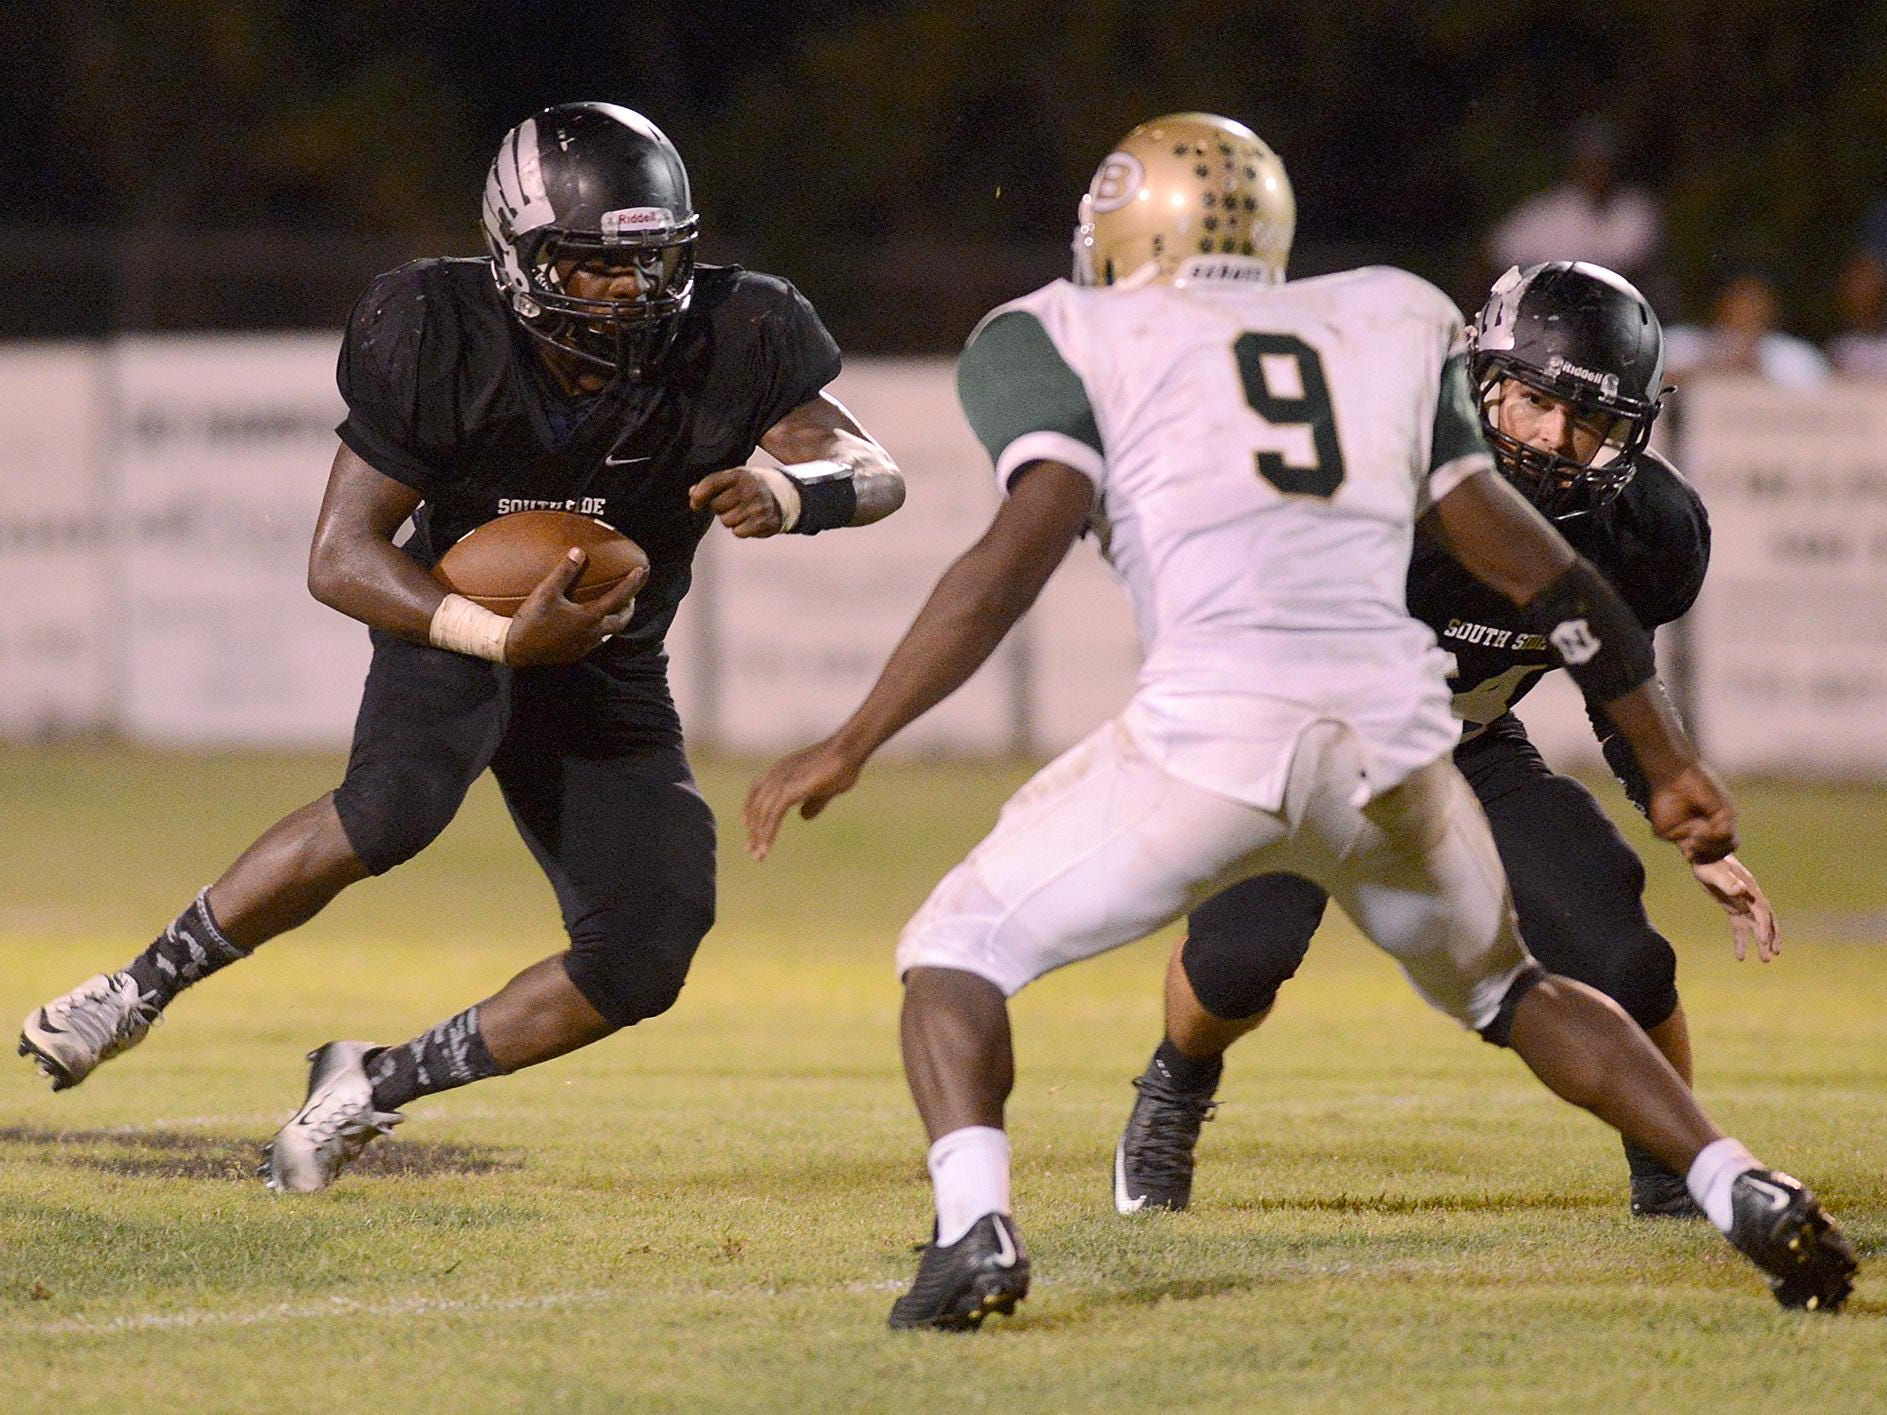 South Side's Tariq Robinson carries the ball against Bolivar at South Side on Friday.